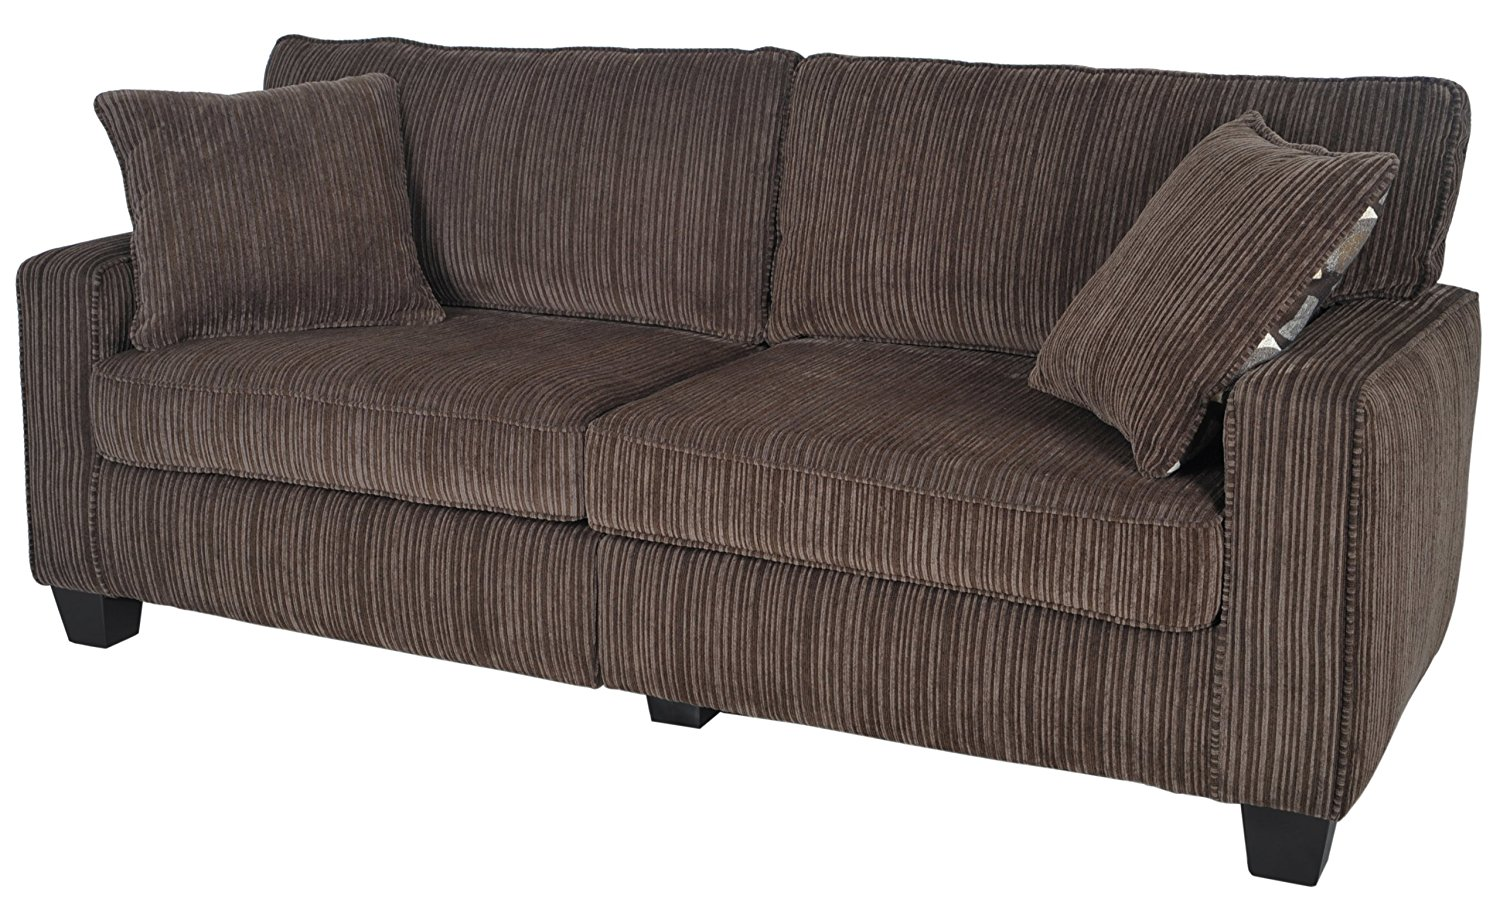 "Serta RTA Palisades Collection 78"" Sofa in Riverfront Brown"